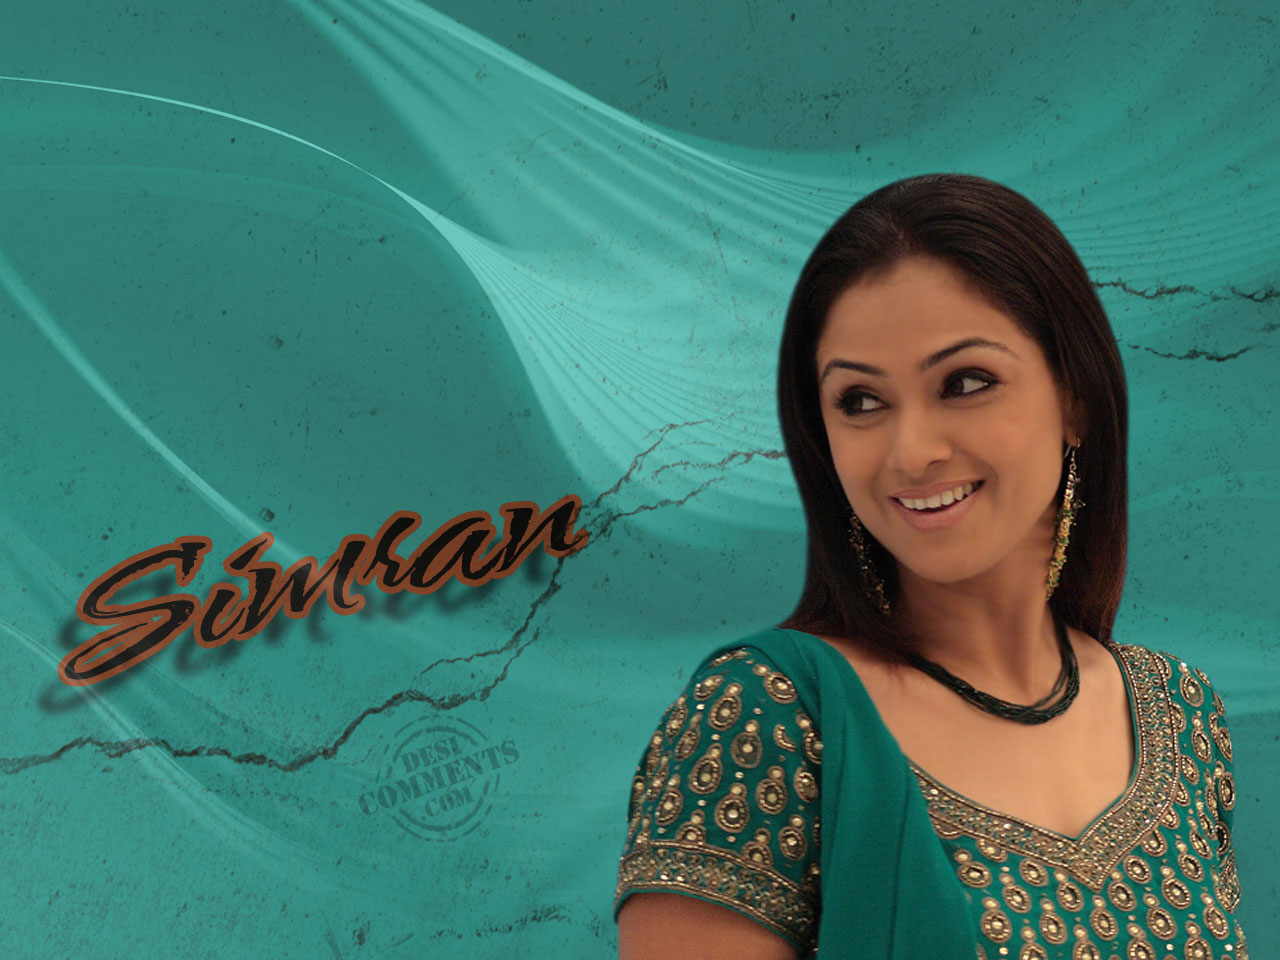 Sad Girl Wallpaper With Hindi Quotes Simran Wallpapers South Indian Celebrities